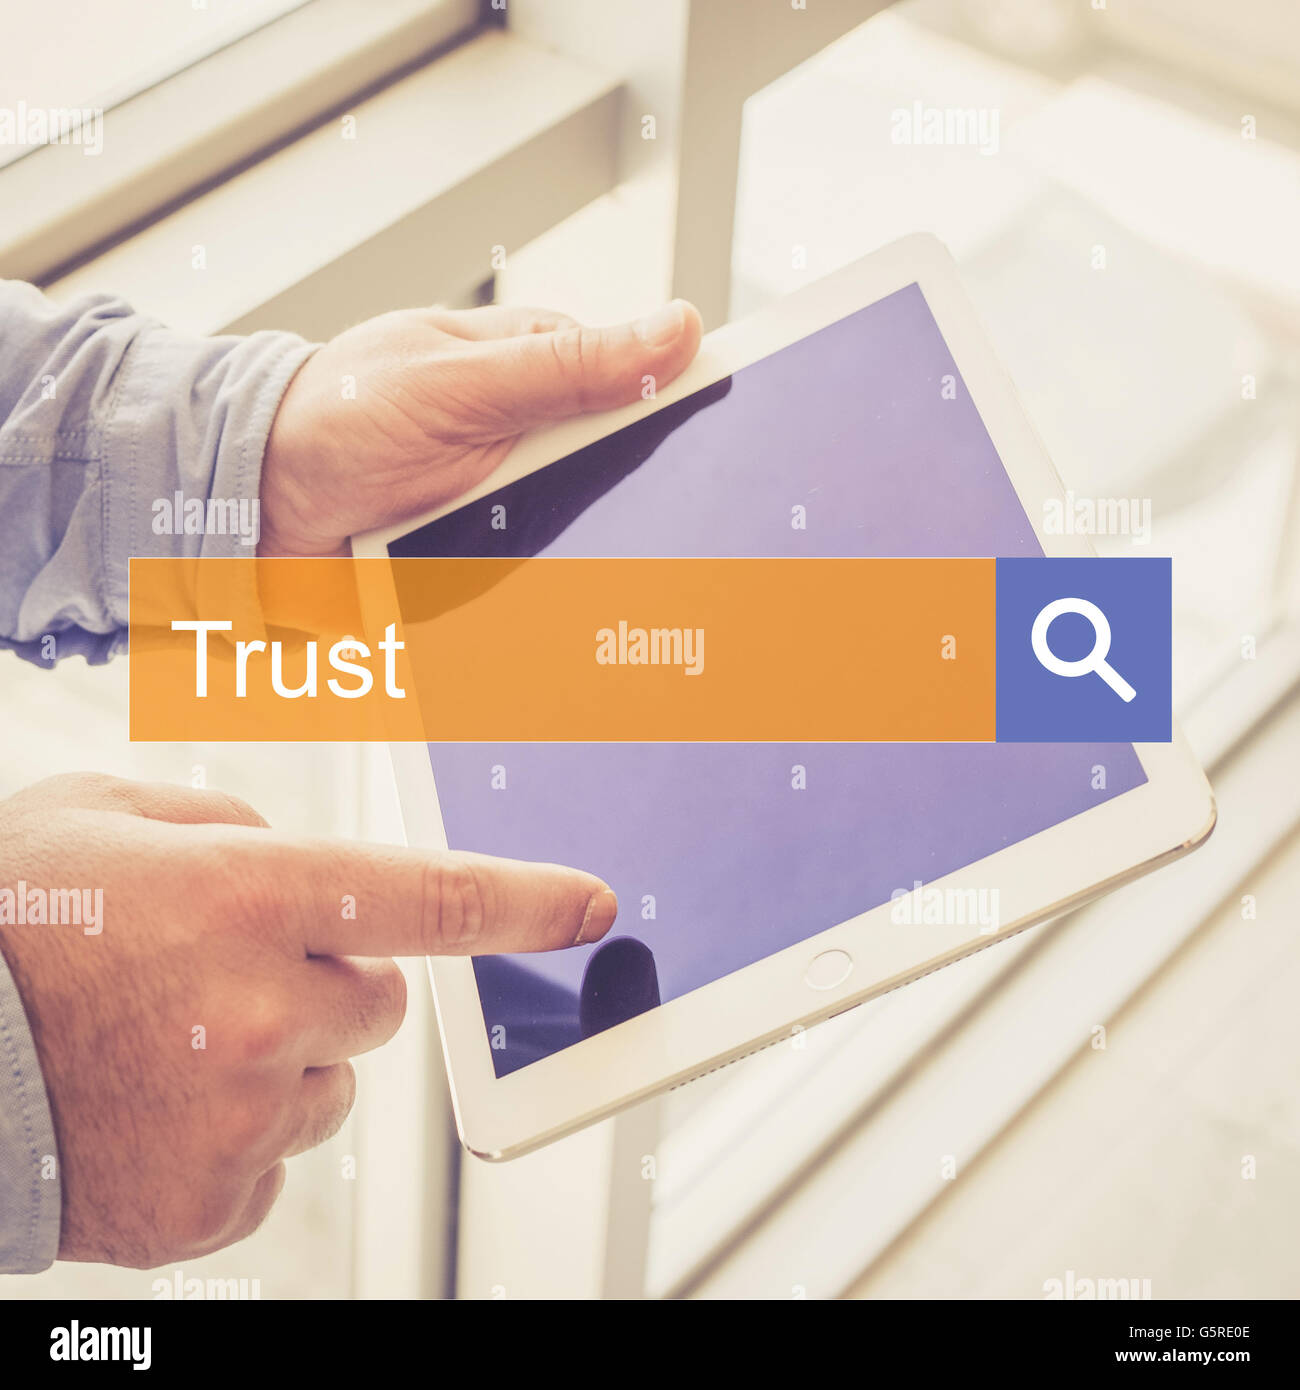 SEARCH TECHNOLOGY COMMUNICATION  Trust TABLET FINDING CONCEPT - Stock Image